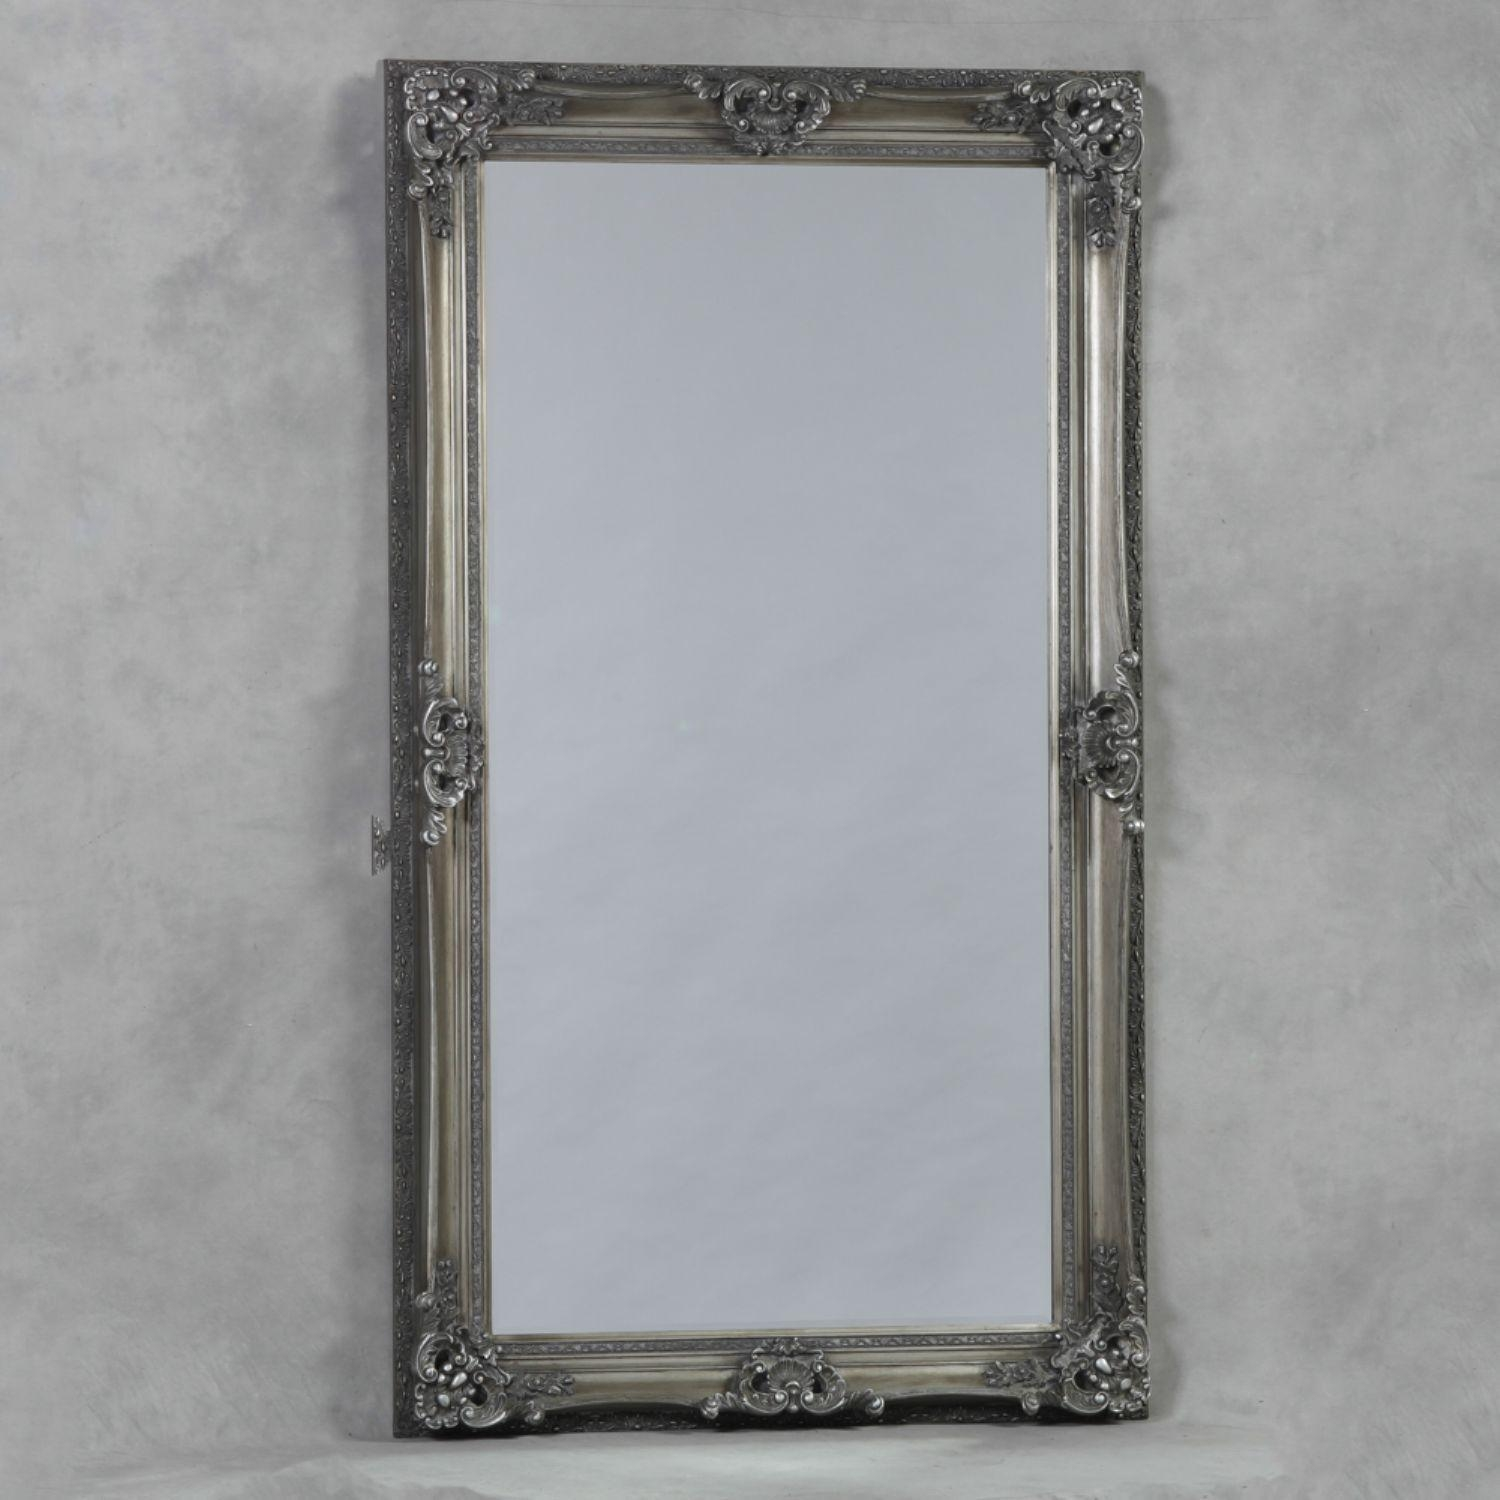 Antique Silver Large Regal Mirror Within Silver Antique Mirror (Image 4 of 20)